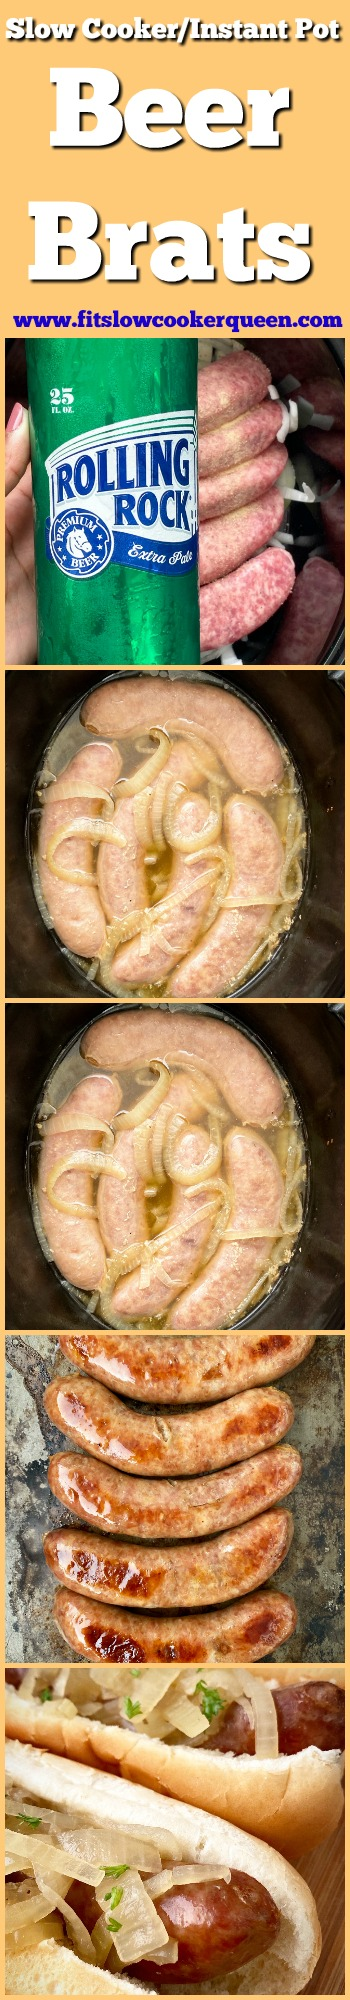 another pinterest pin for {VIDEO} Slow Cooker_Instant Pot Beer Brats